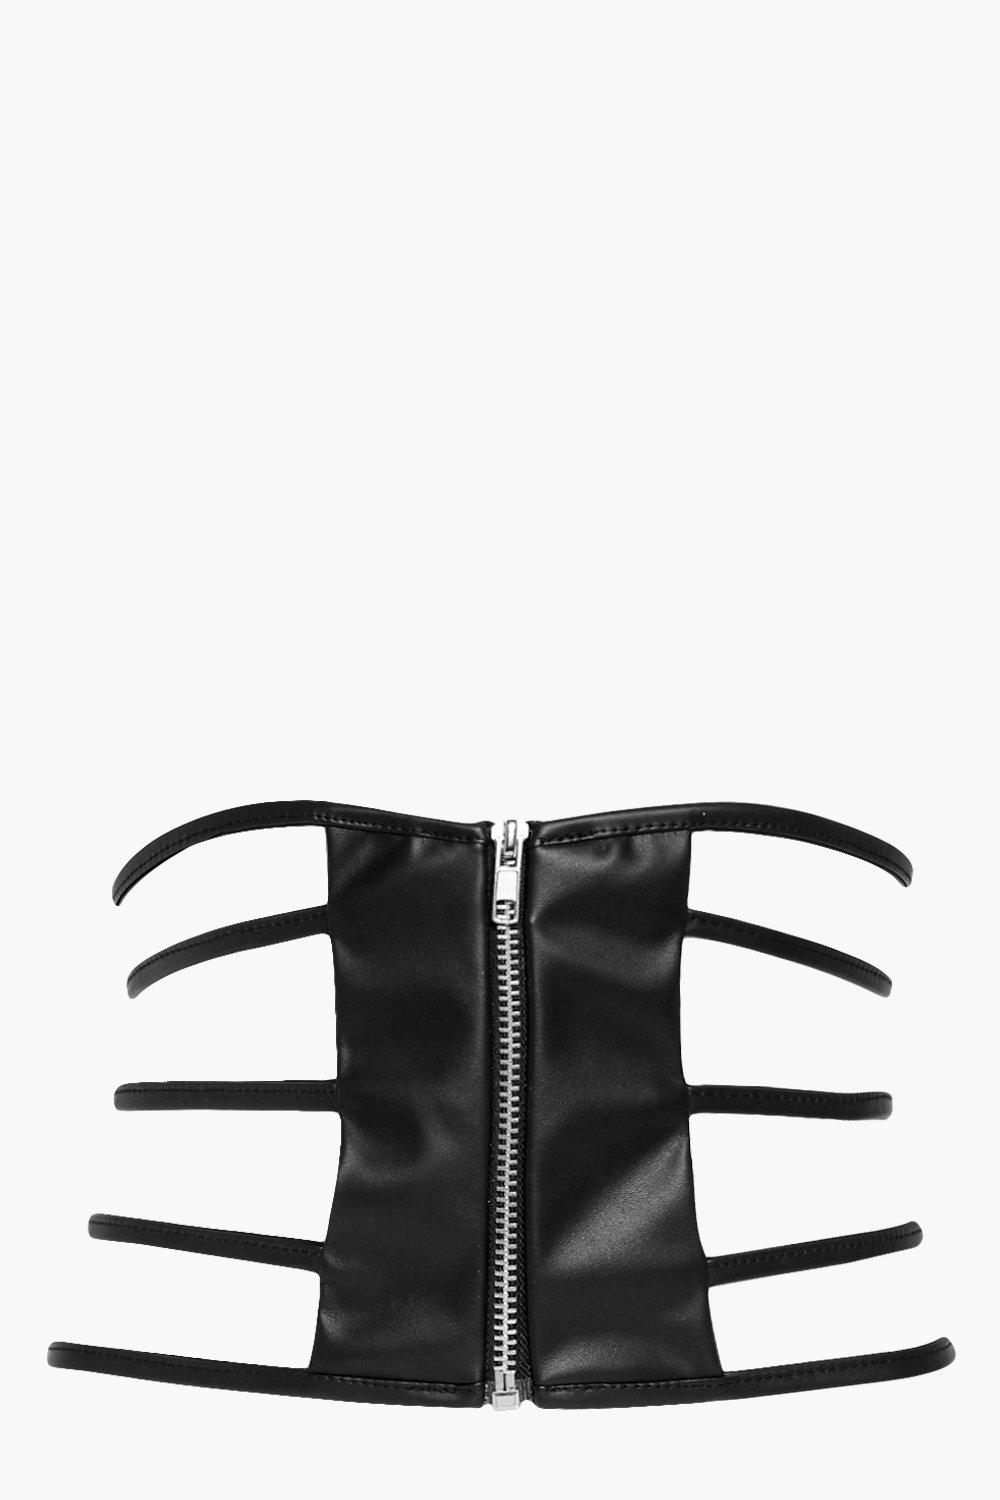 Strappy Zip Front Waist Belt - black - Holly Strap